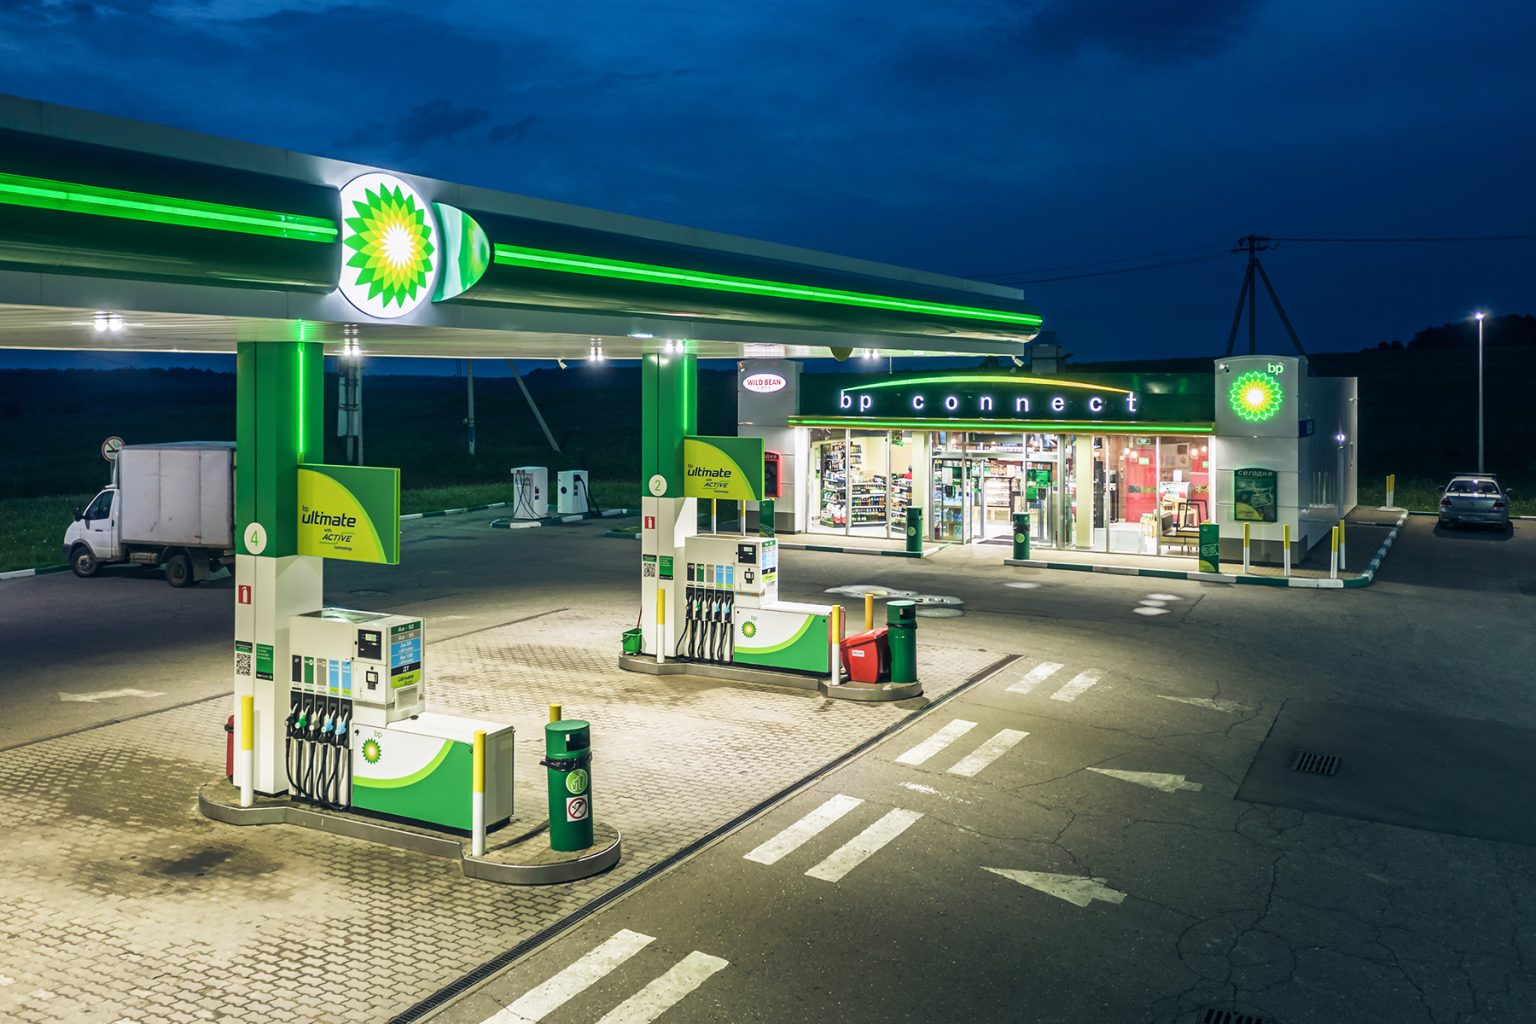 Night view of a canopy BP Filling station